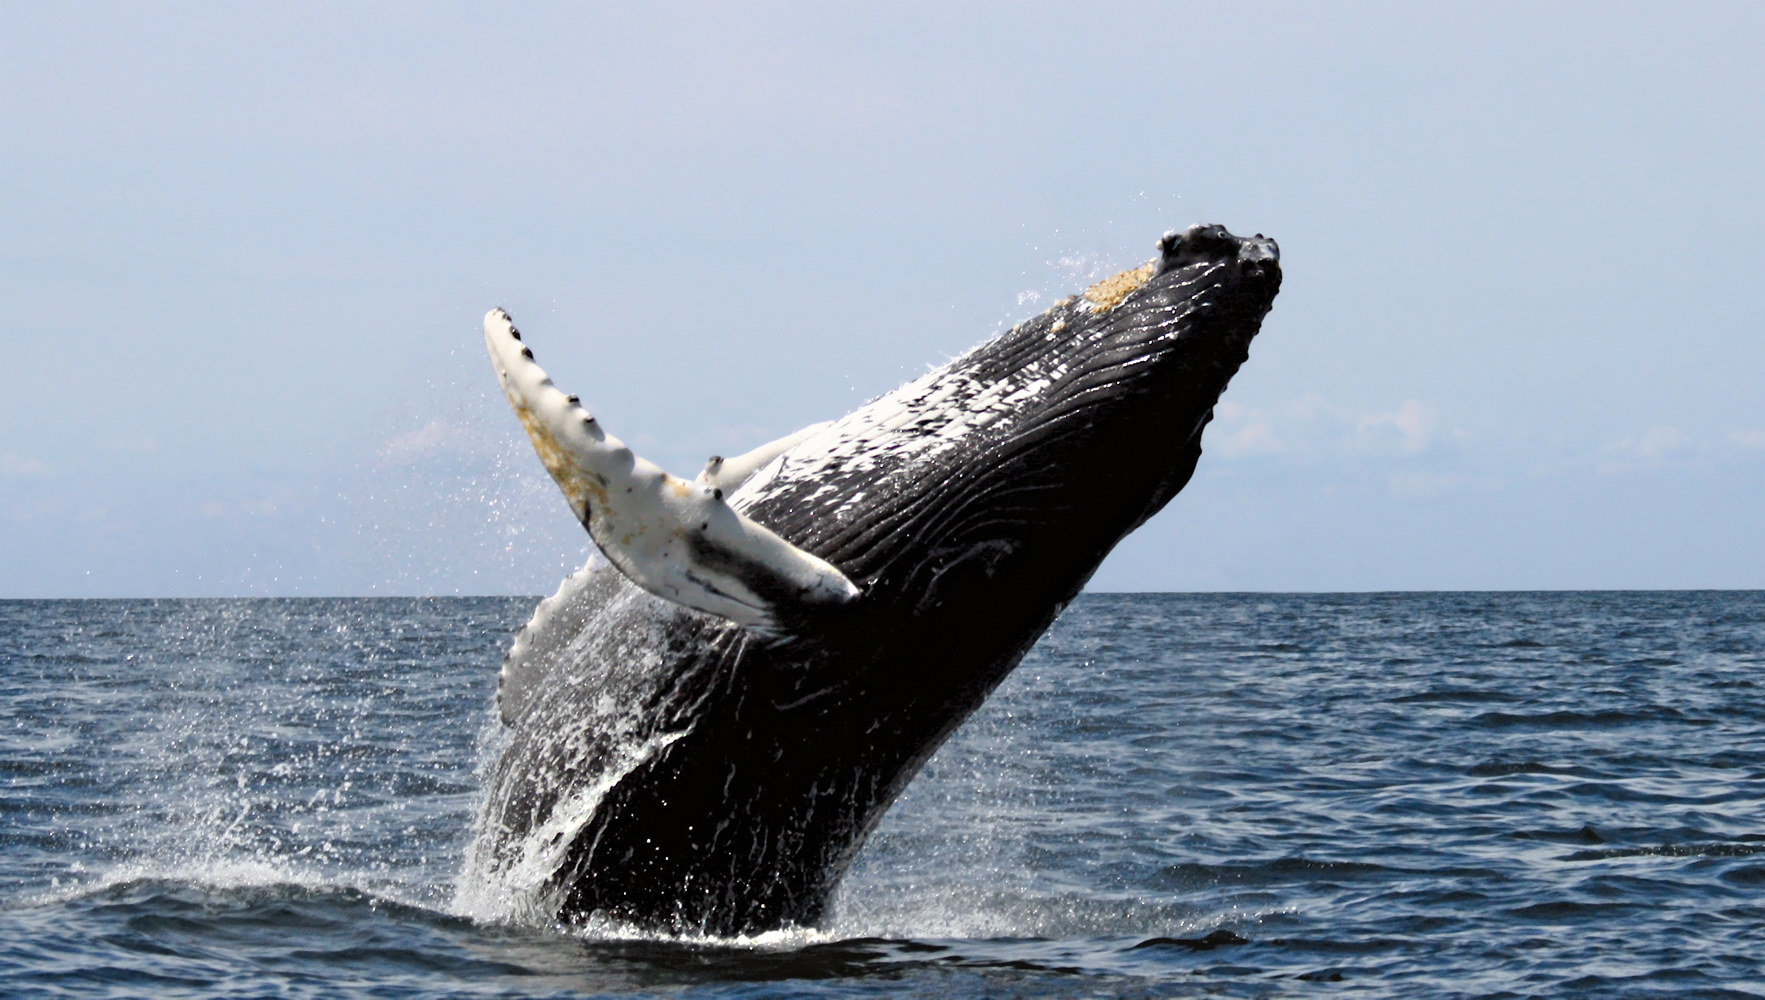 Humpback Whale leaping out of the water, Photo Credit Wikipedia.